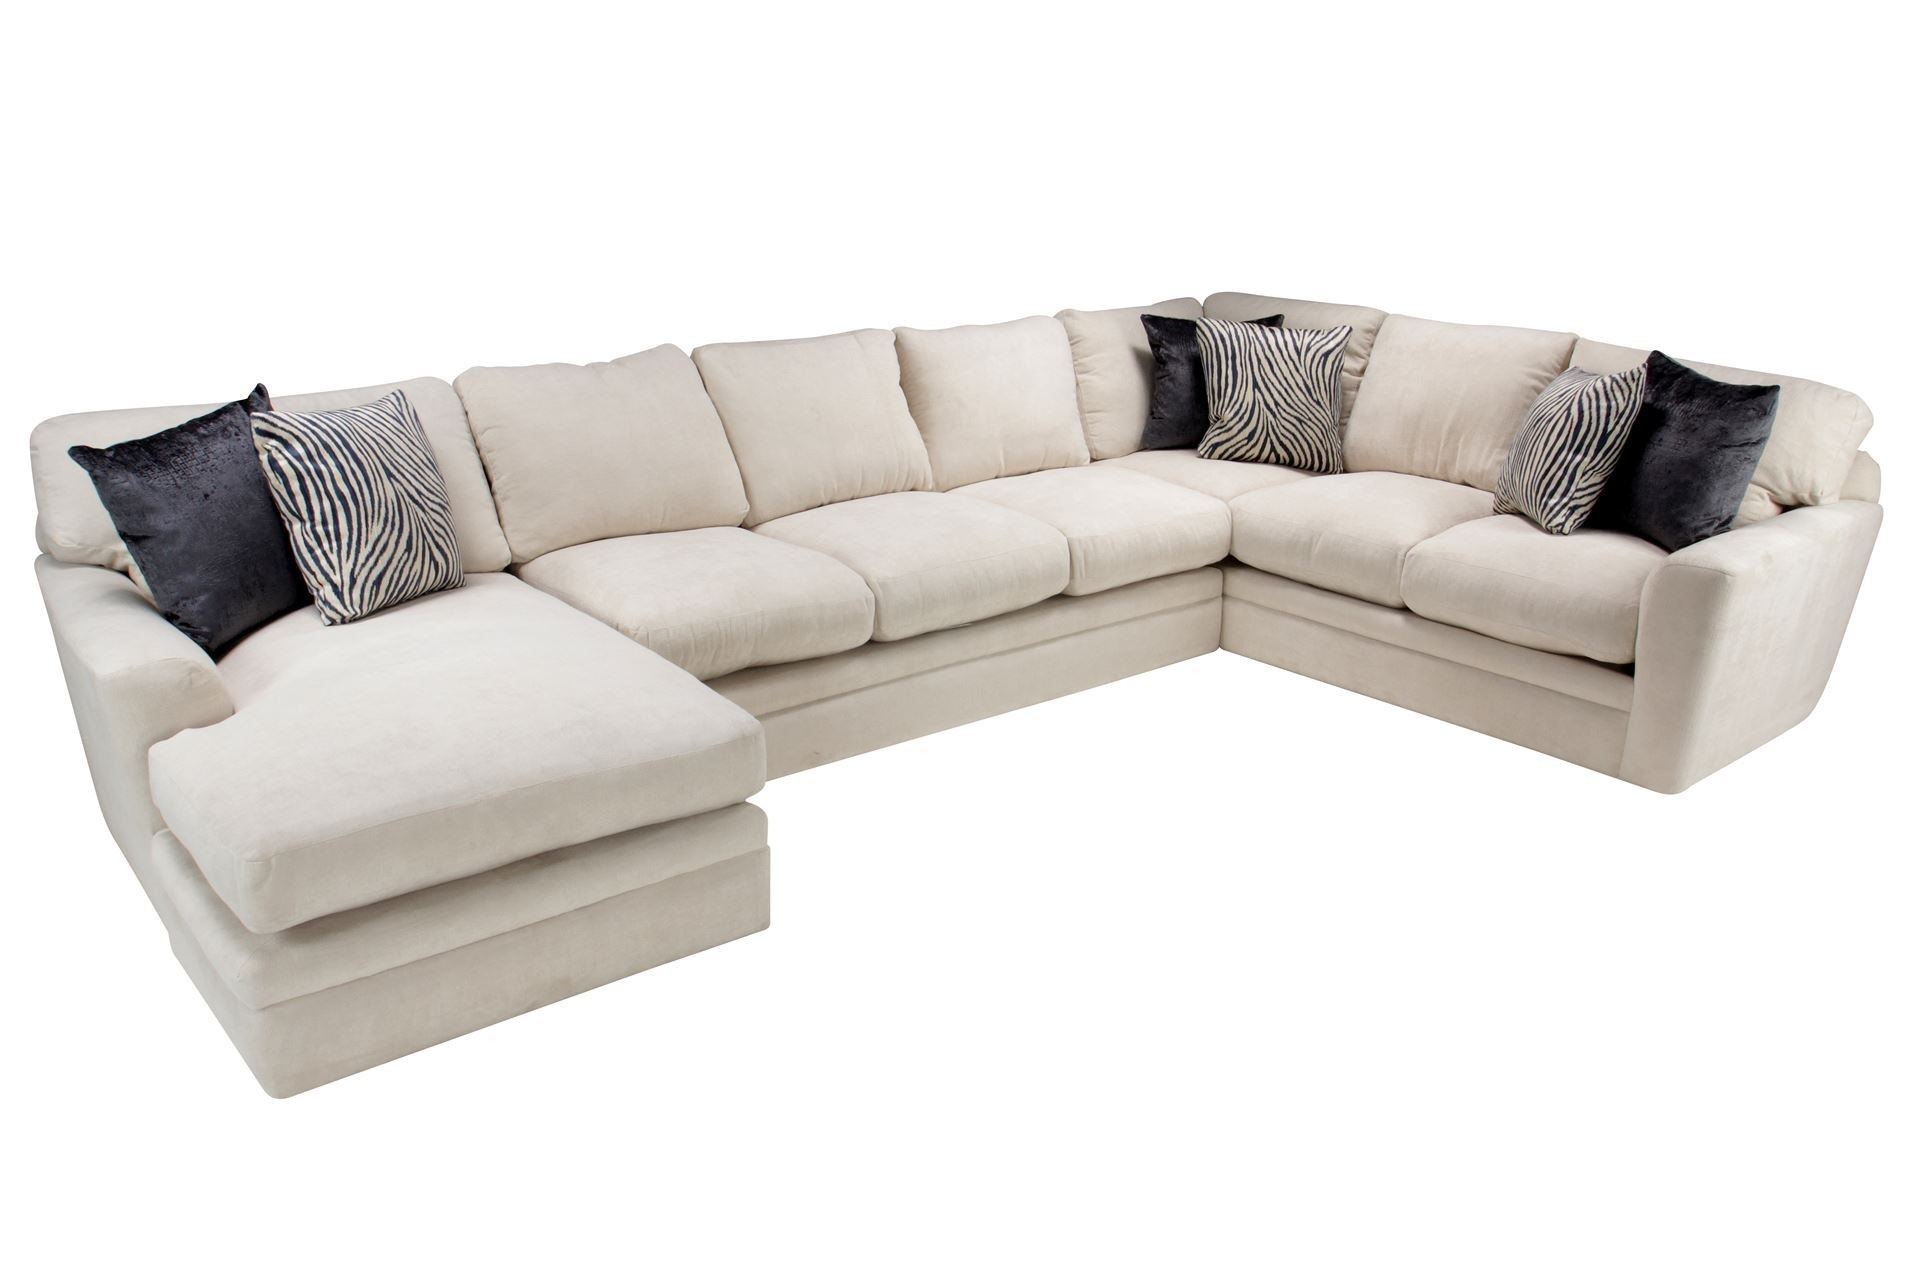 Living Spaces Sectional Couches Alder 4 Piece 89893 2 Jpg W 446 H In Alder 4 Piece Sectionals (Image 18 of 25)